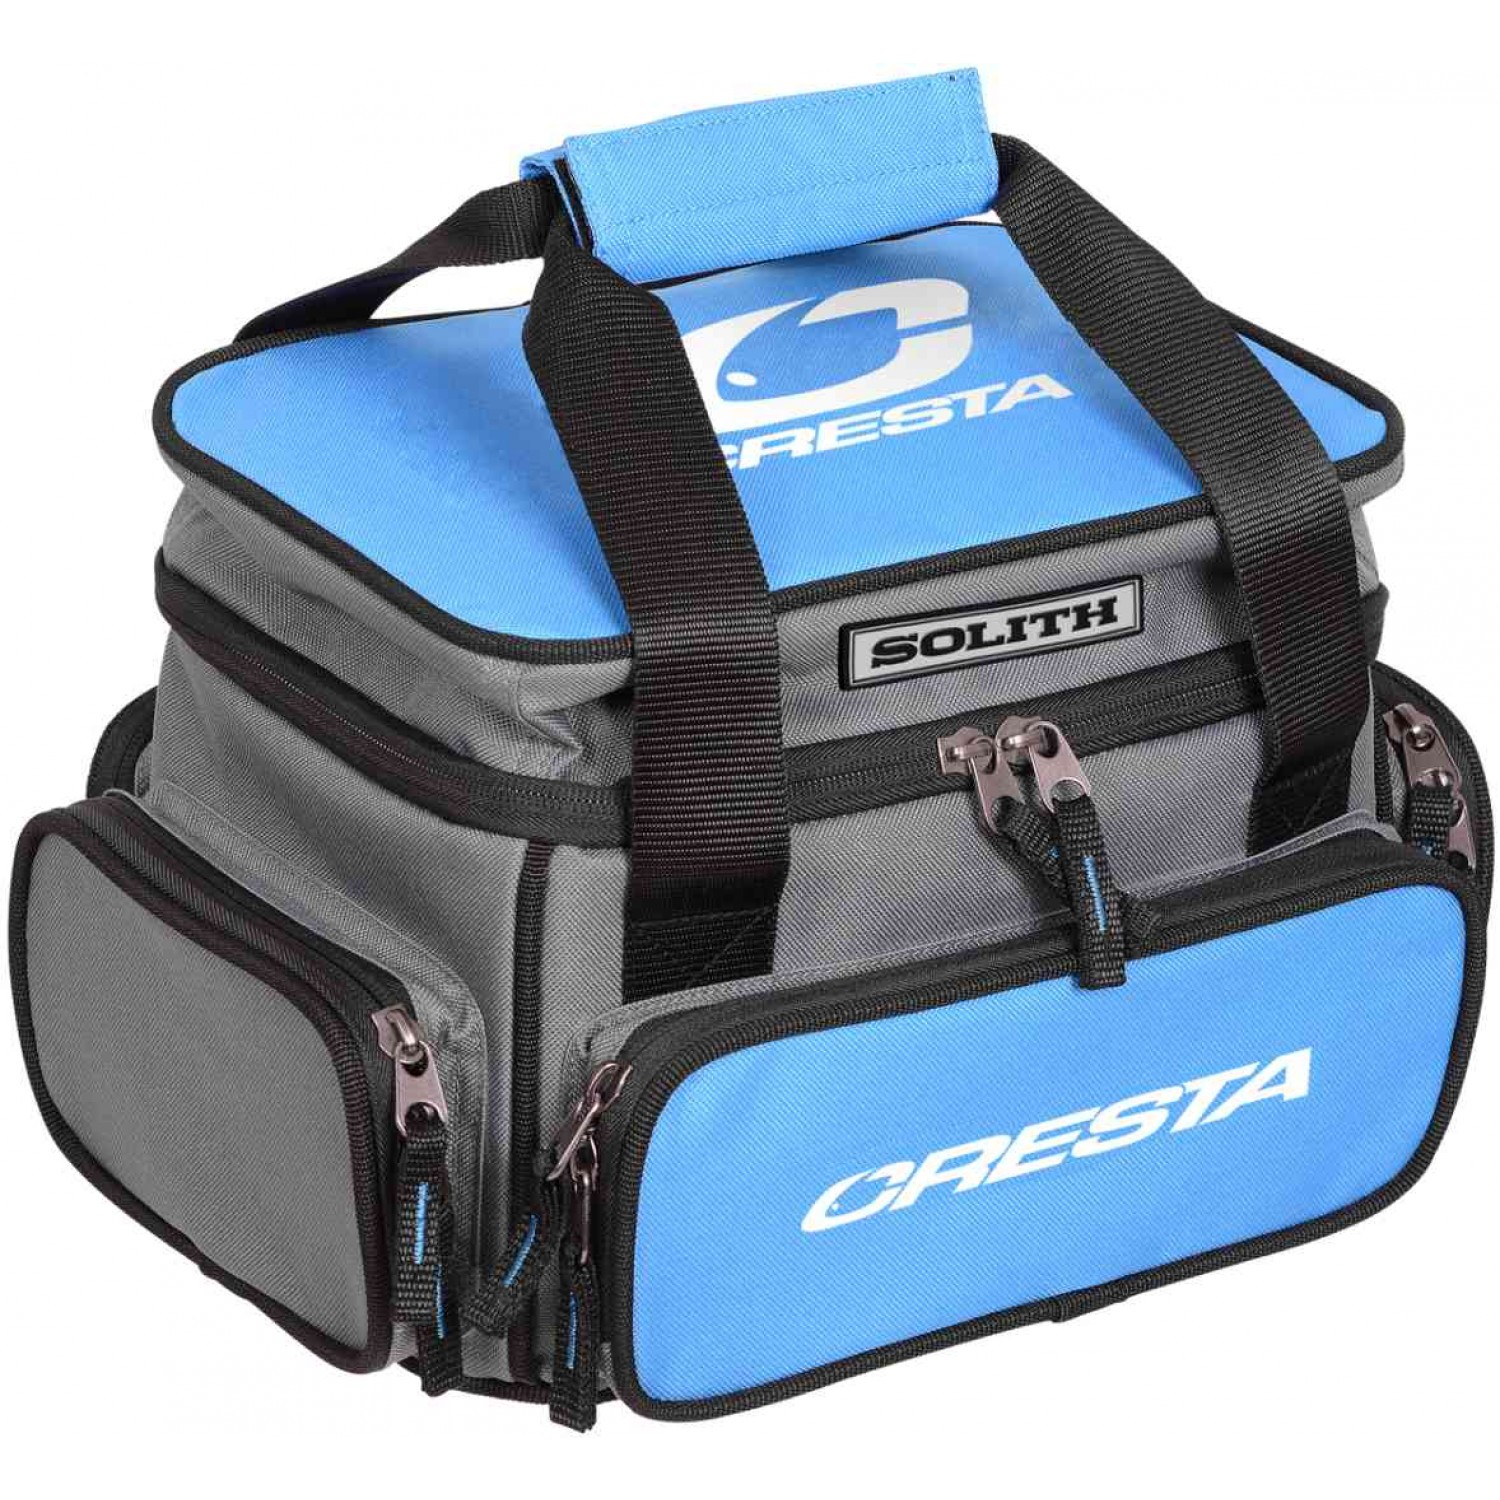 Spro Cresta Competition Feeder Bag L